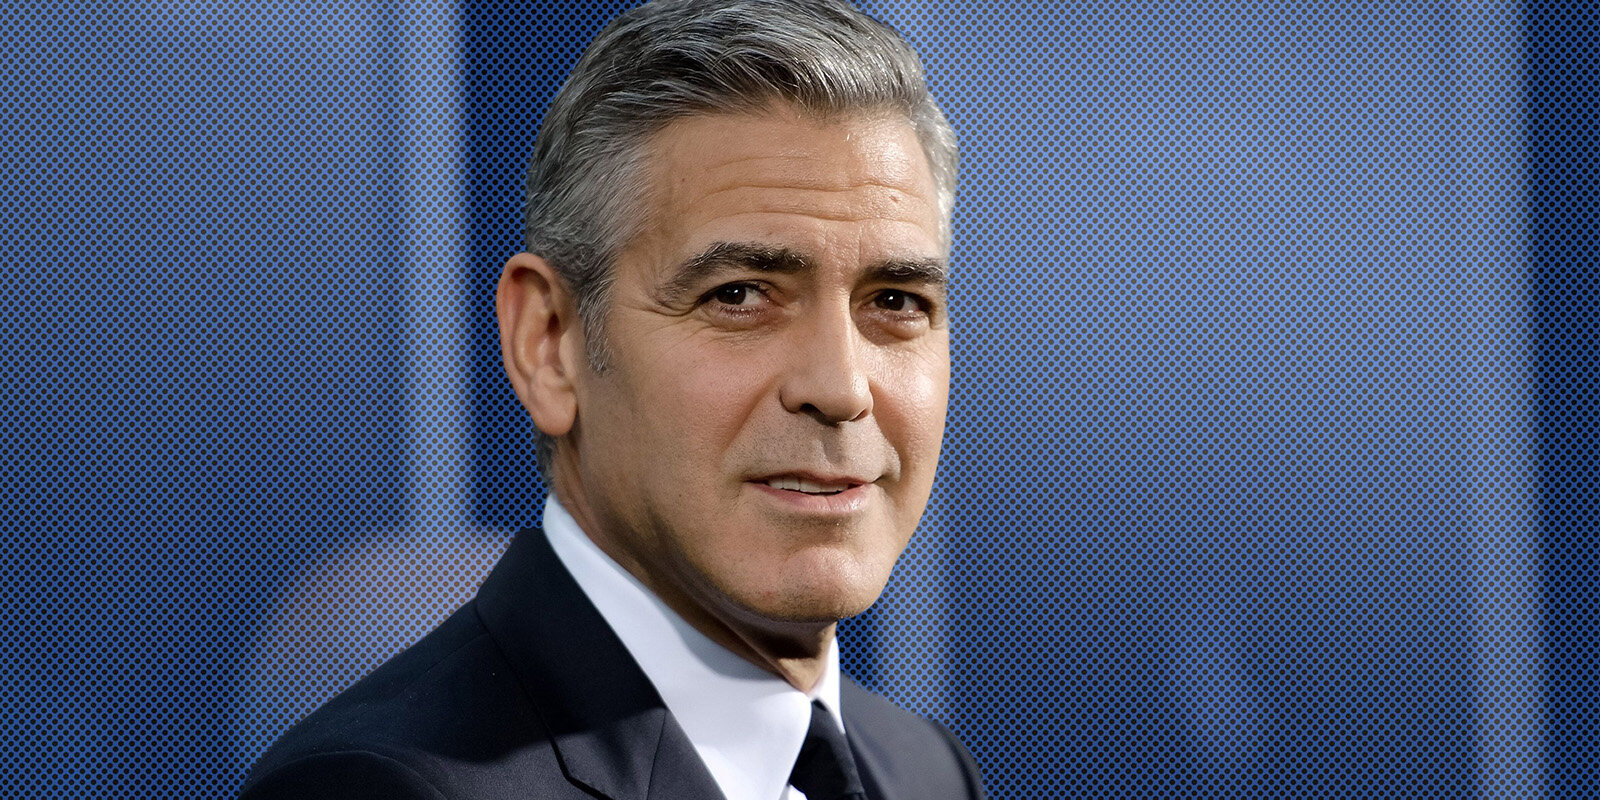 George Clooney has always had charming good looks, but if you think he looks hot now, look at  these photos of a young George Clooney.